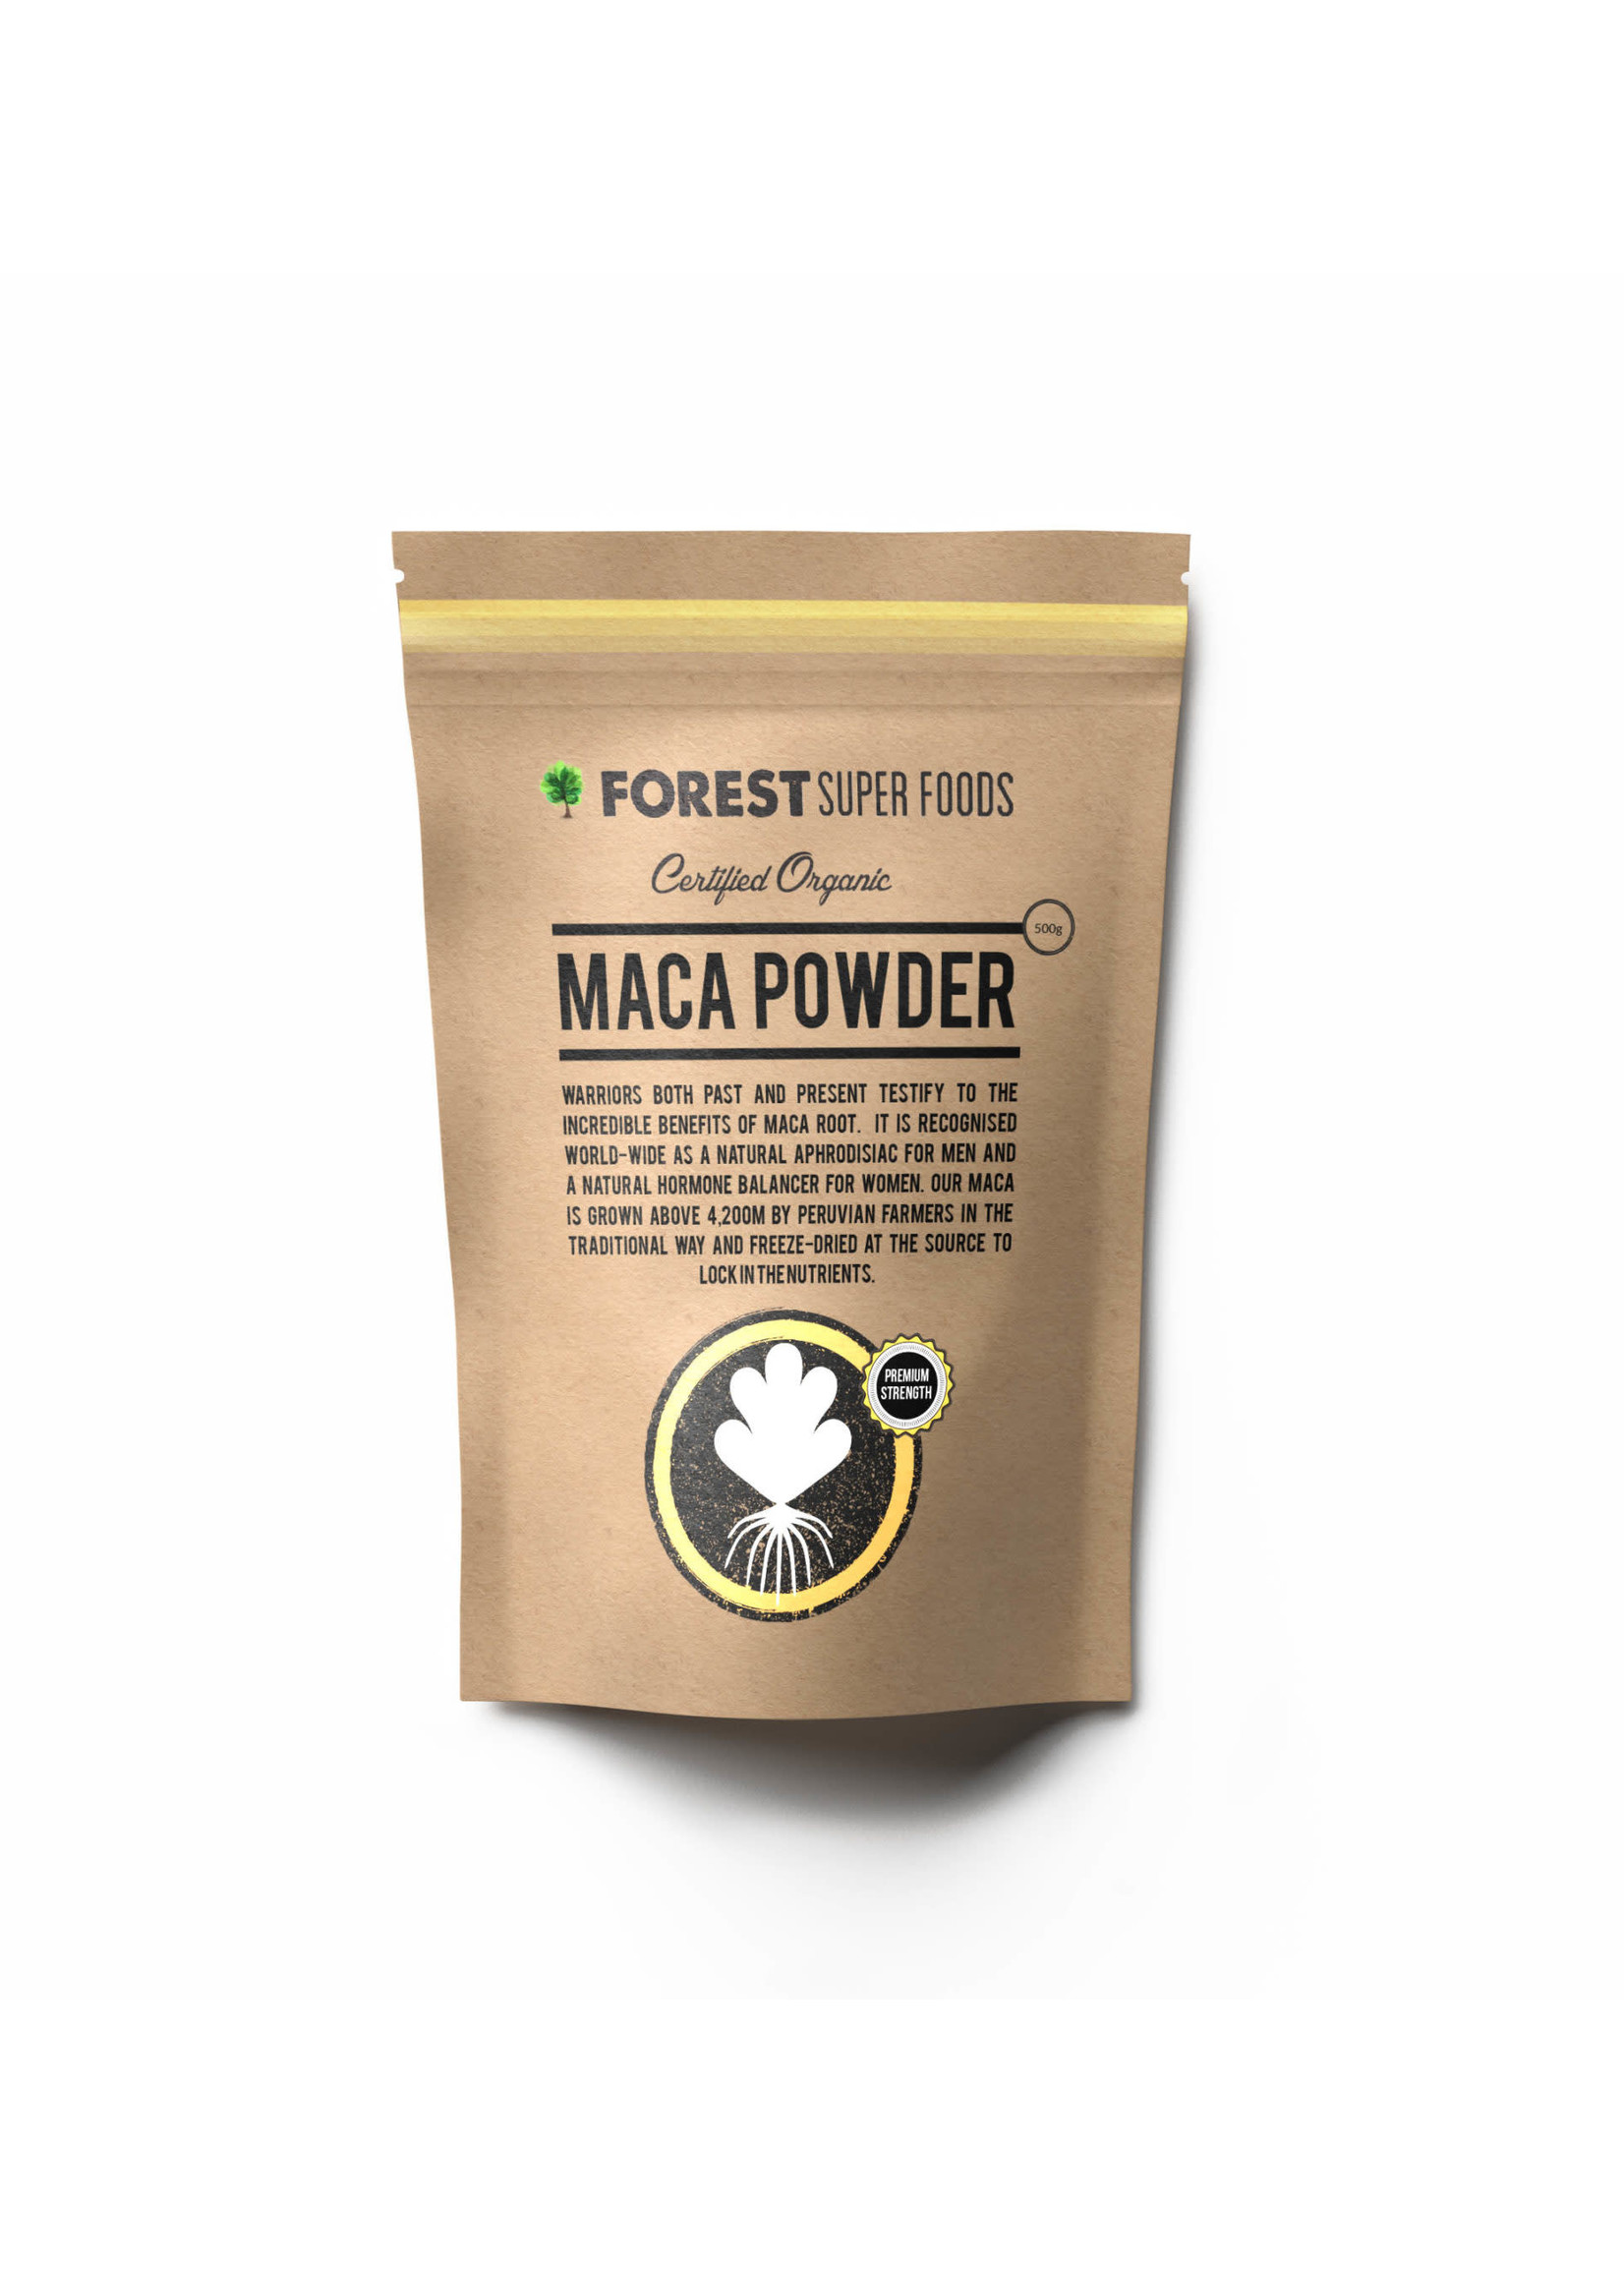 forest super foods Forest Superfoods Yellow Maca 500g